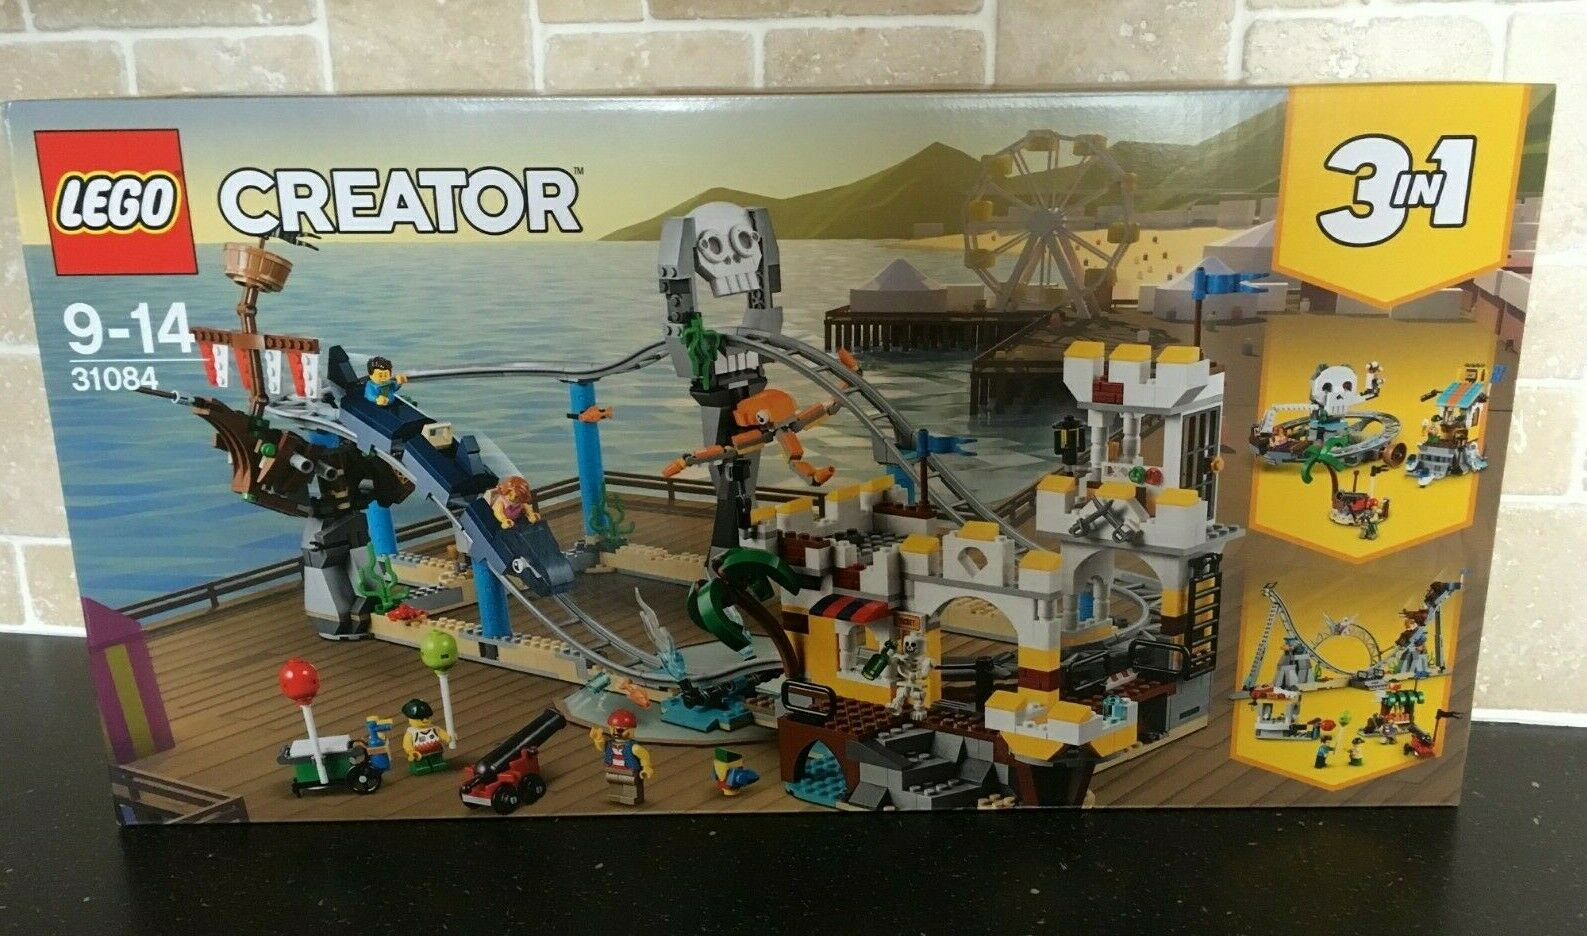 LEGO CREATOR - 31084 Pirate Roller Coaster (3 in1) Brand New In Sealed Box